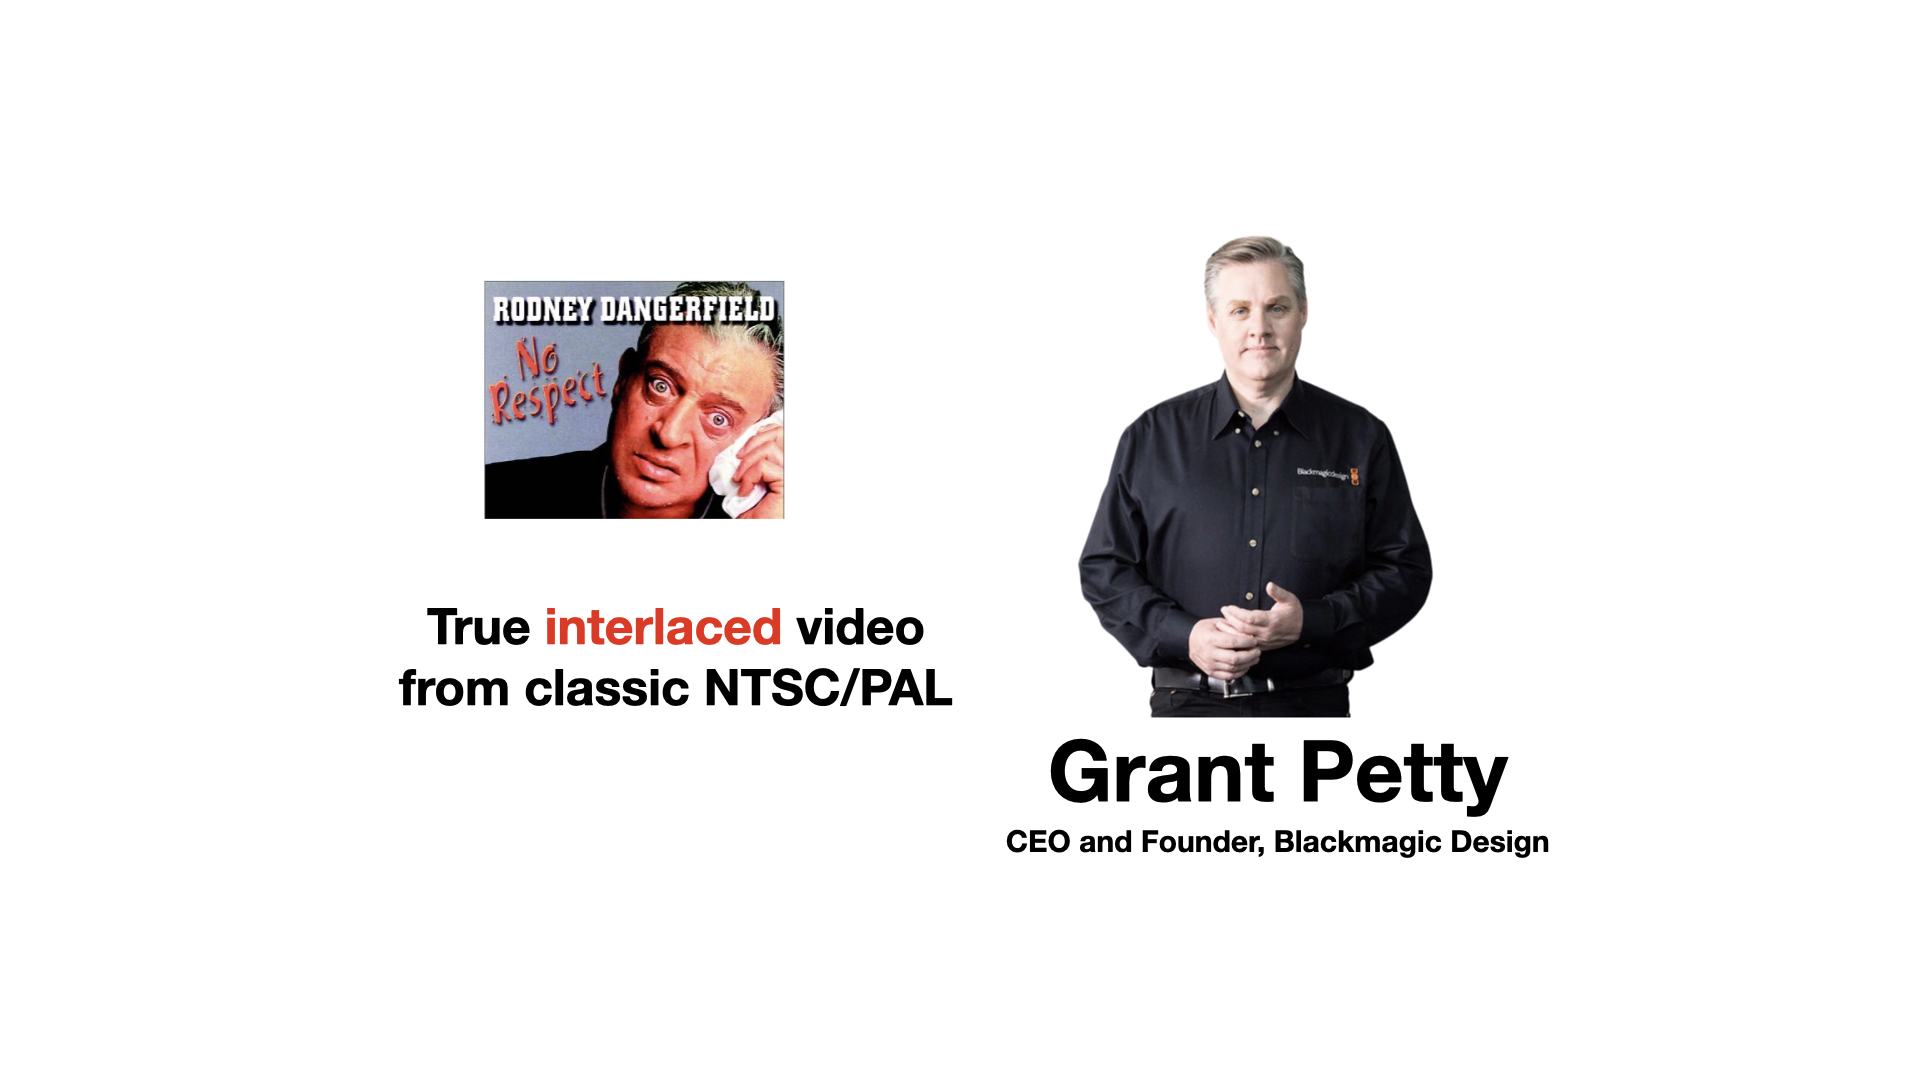 Blackmagic: Give classic NTSC/PAL interlaced footage some respect! 4